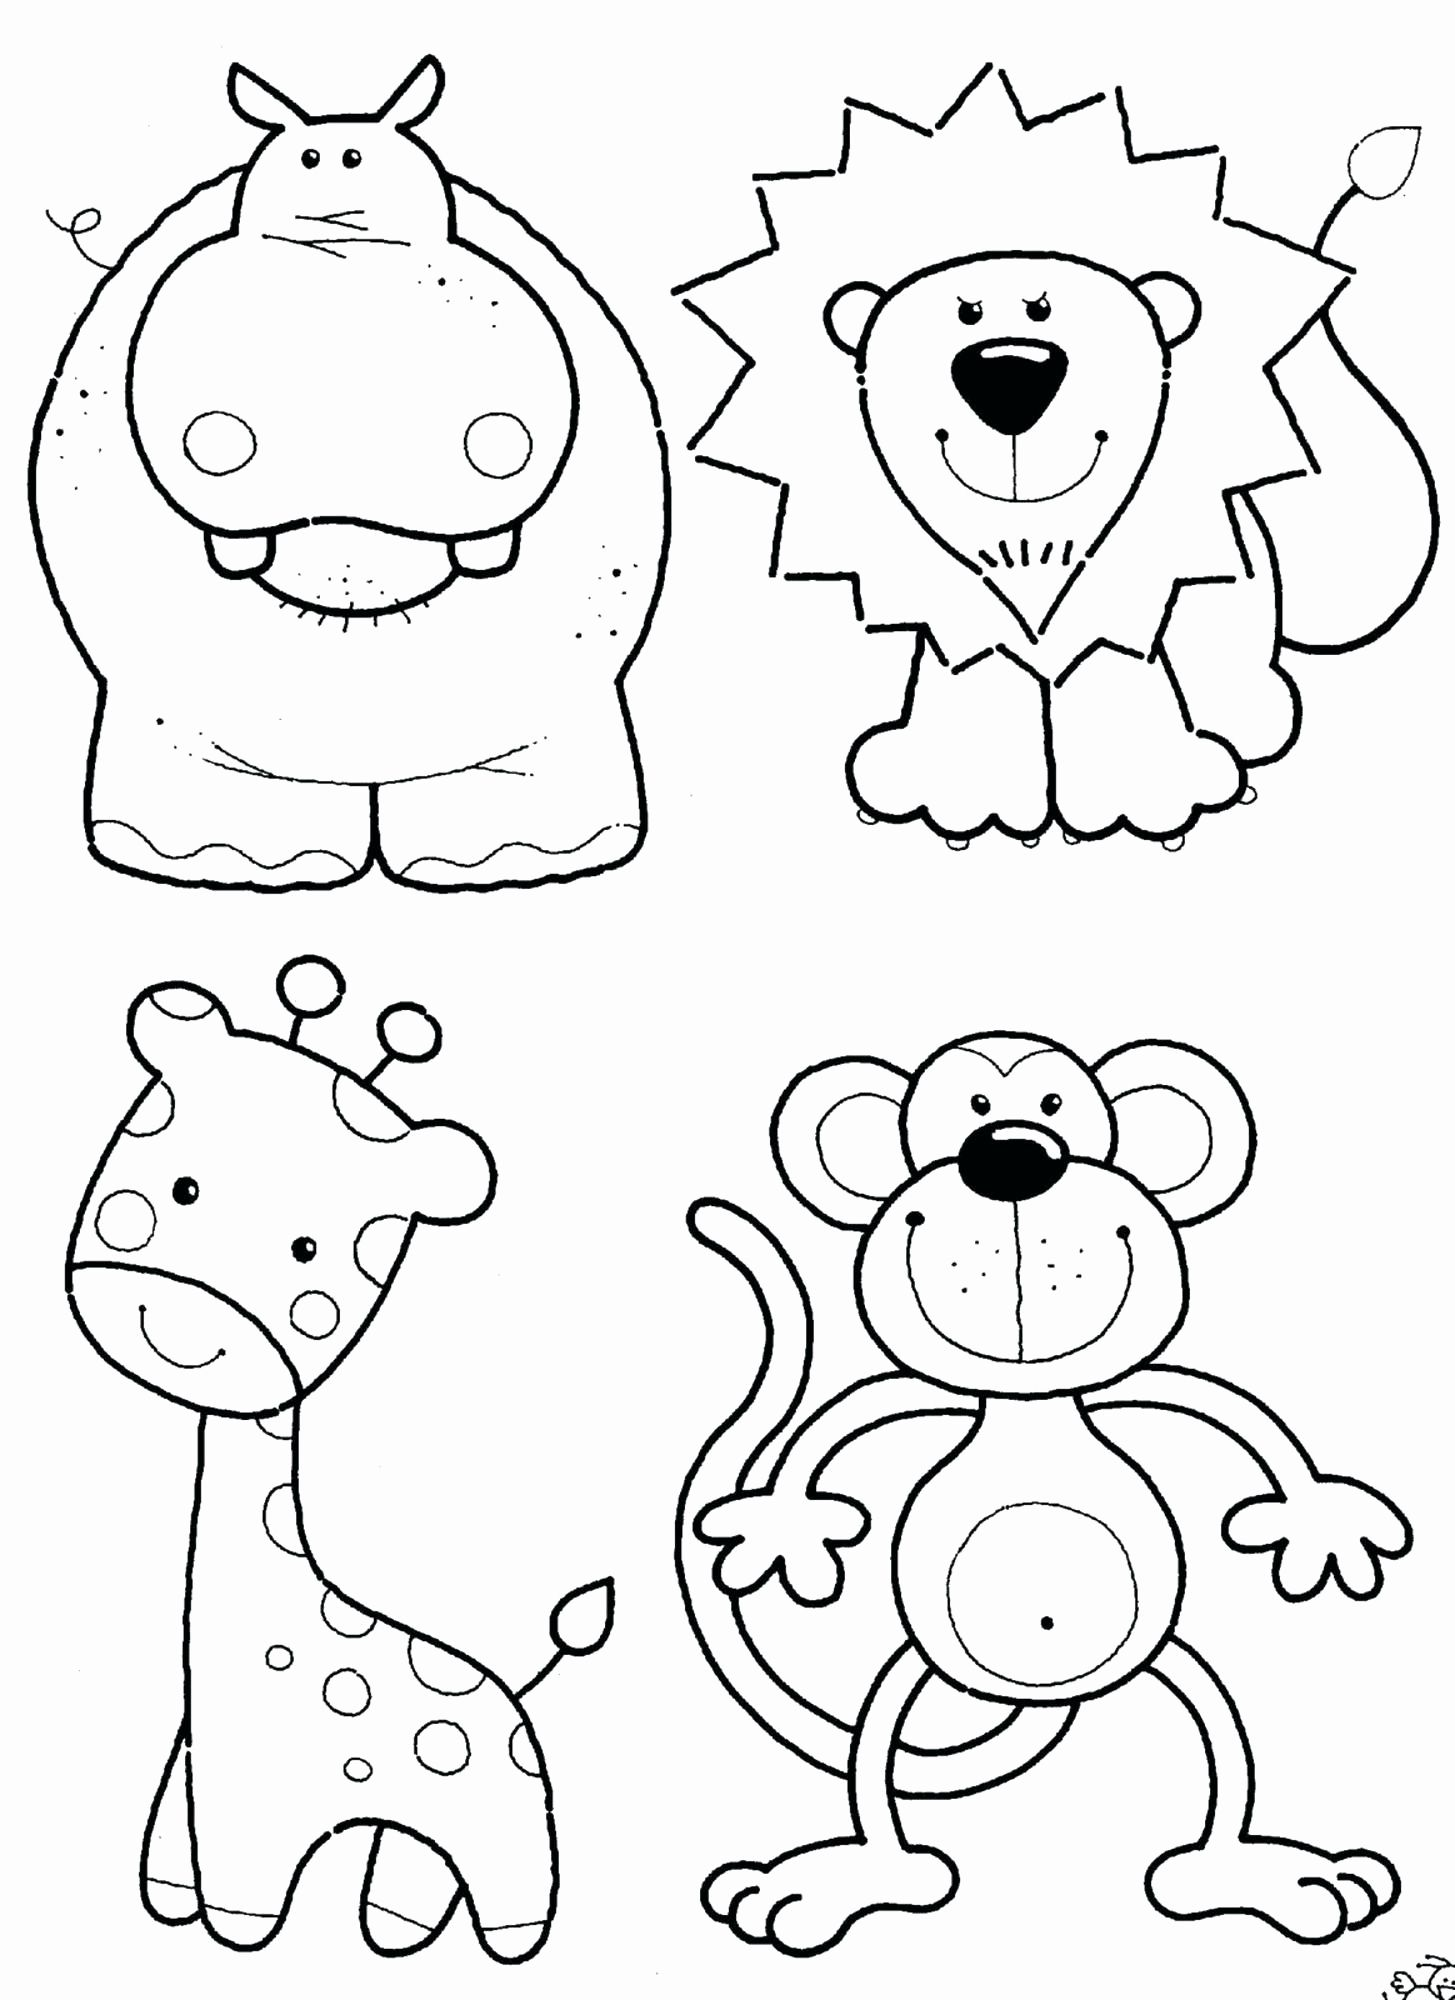 Zoo Animal Coloring Pages For Kids In 2020 Zoo Coloring Pages Animal Coloring Books Zoo Animal Coloring Pages